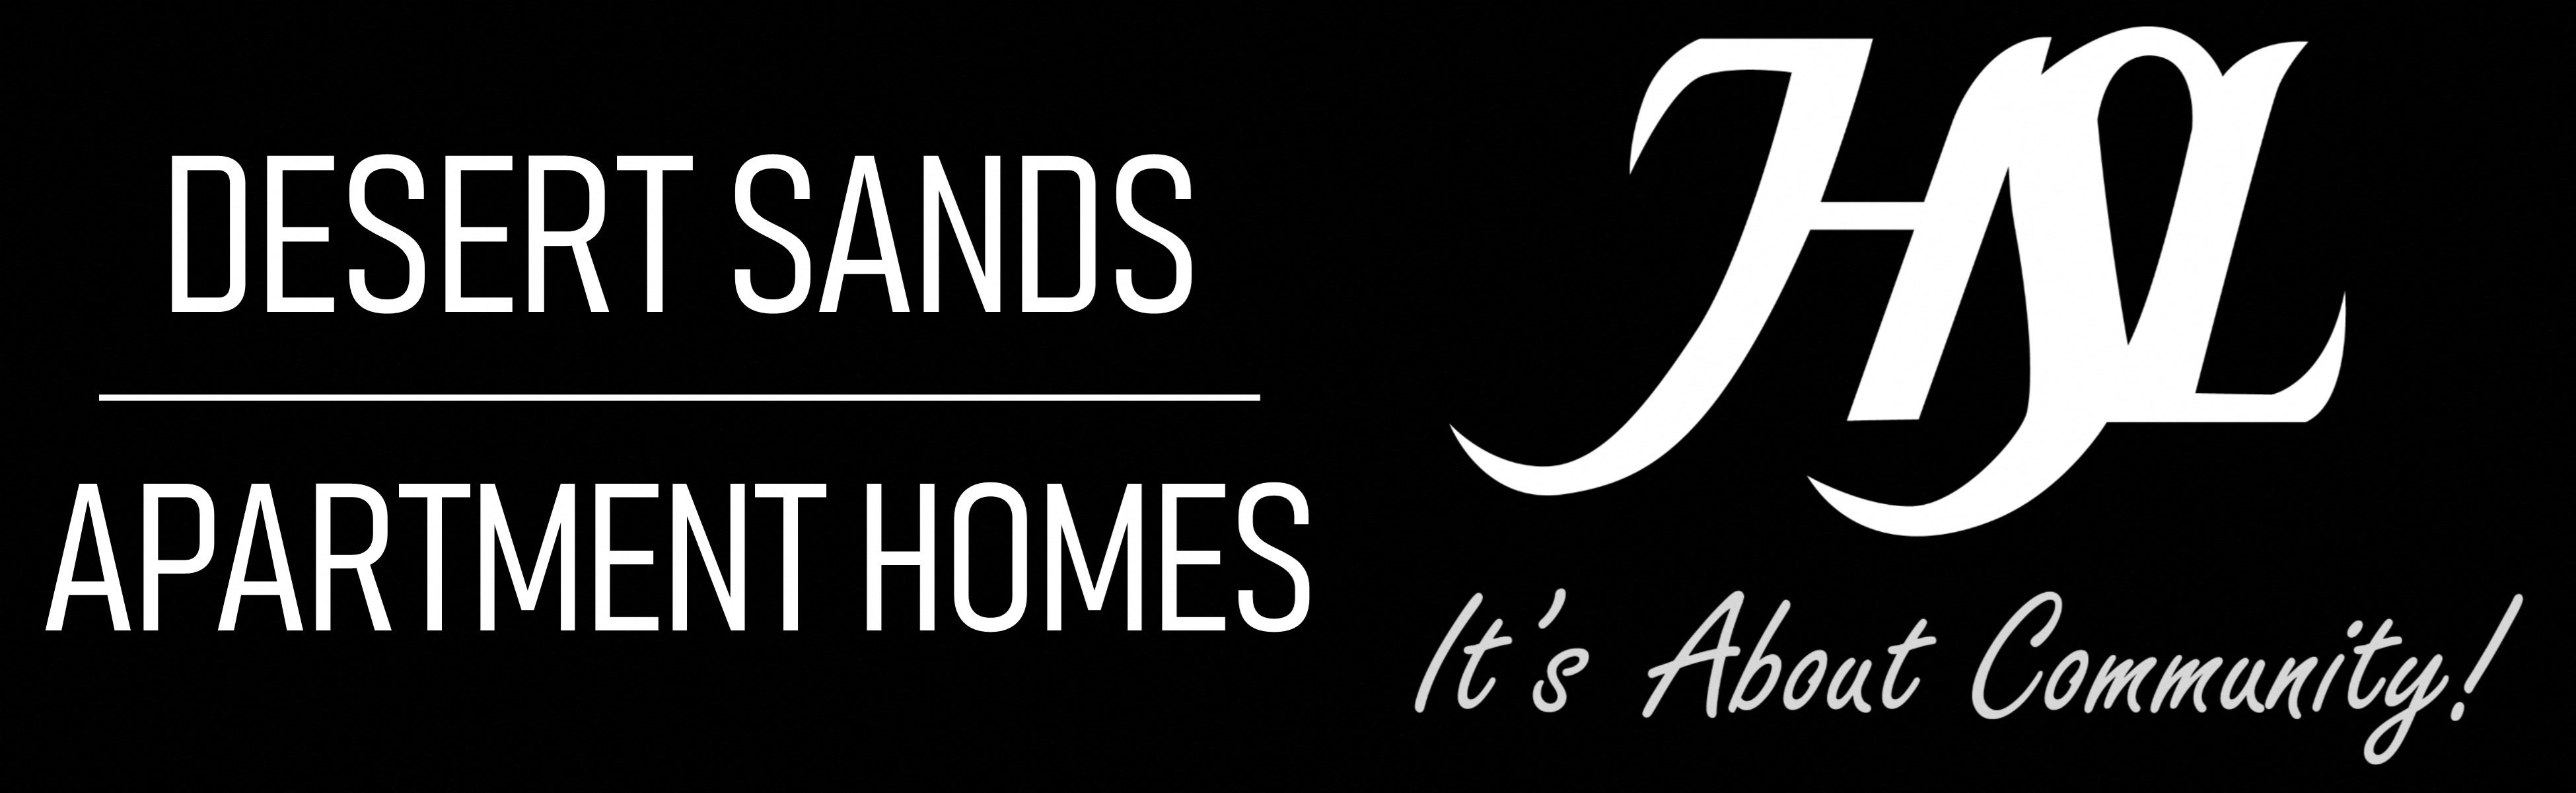 Desert Sands Apartment Homes Logo